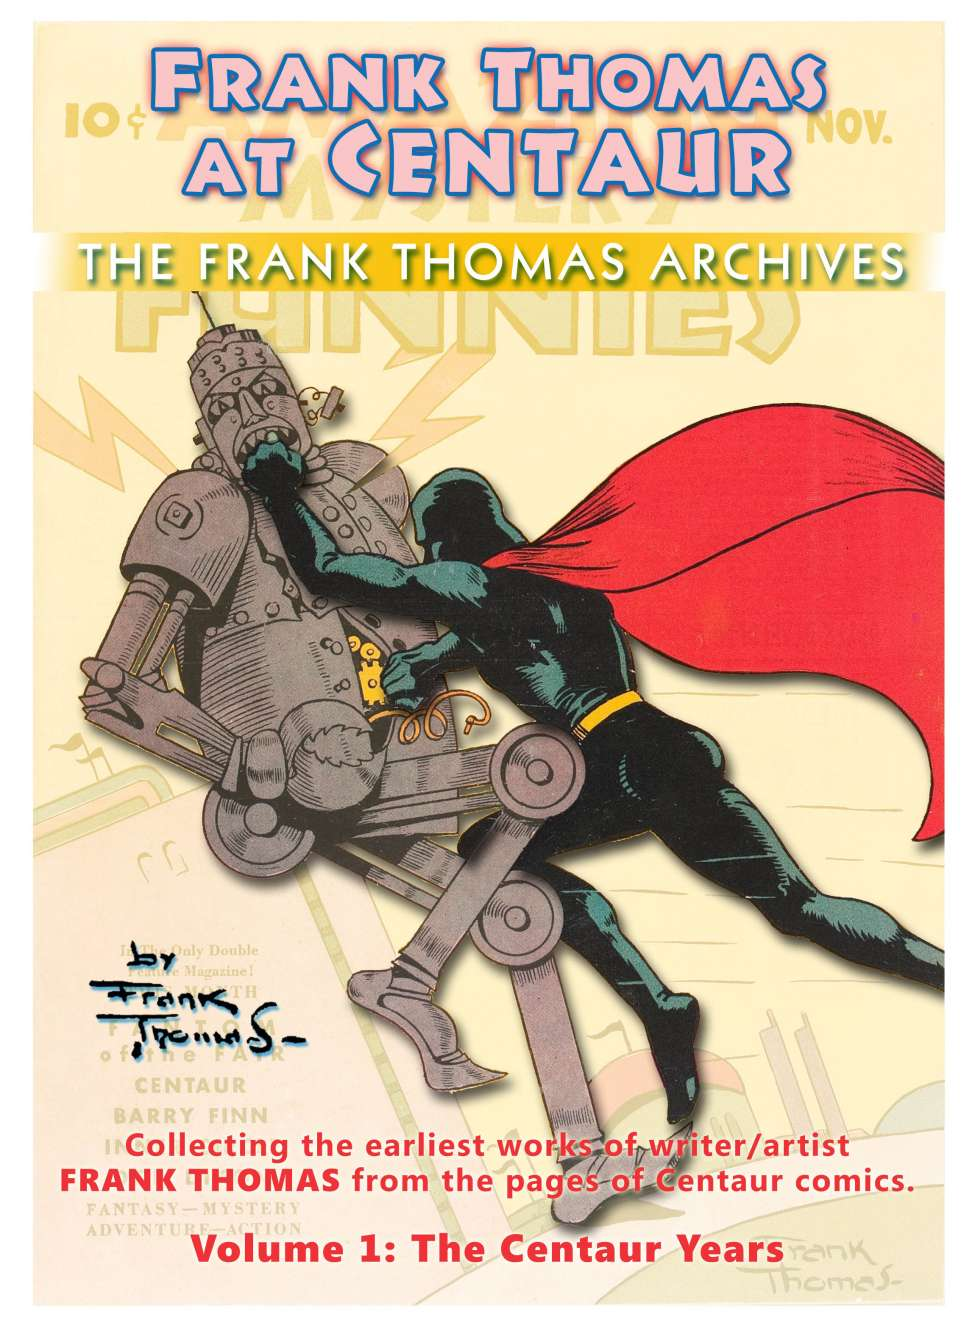 Comic Book Cover For Frank Thomas Archives v1 - Centaur Years (Centaur)